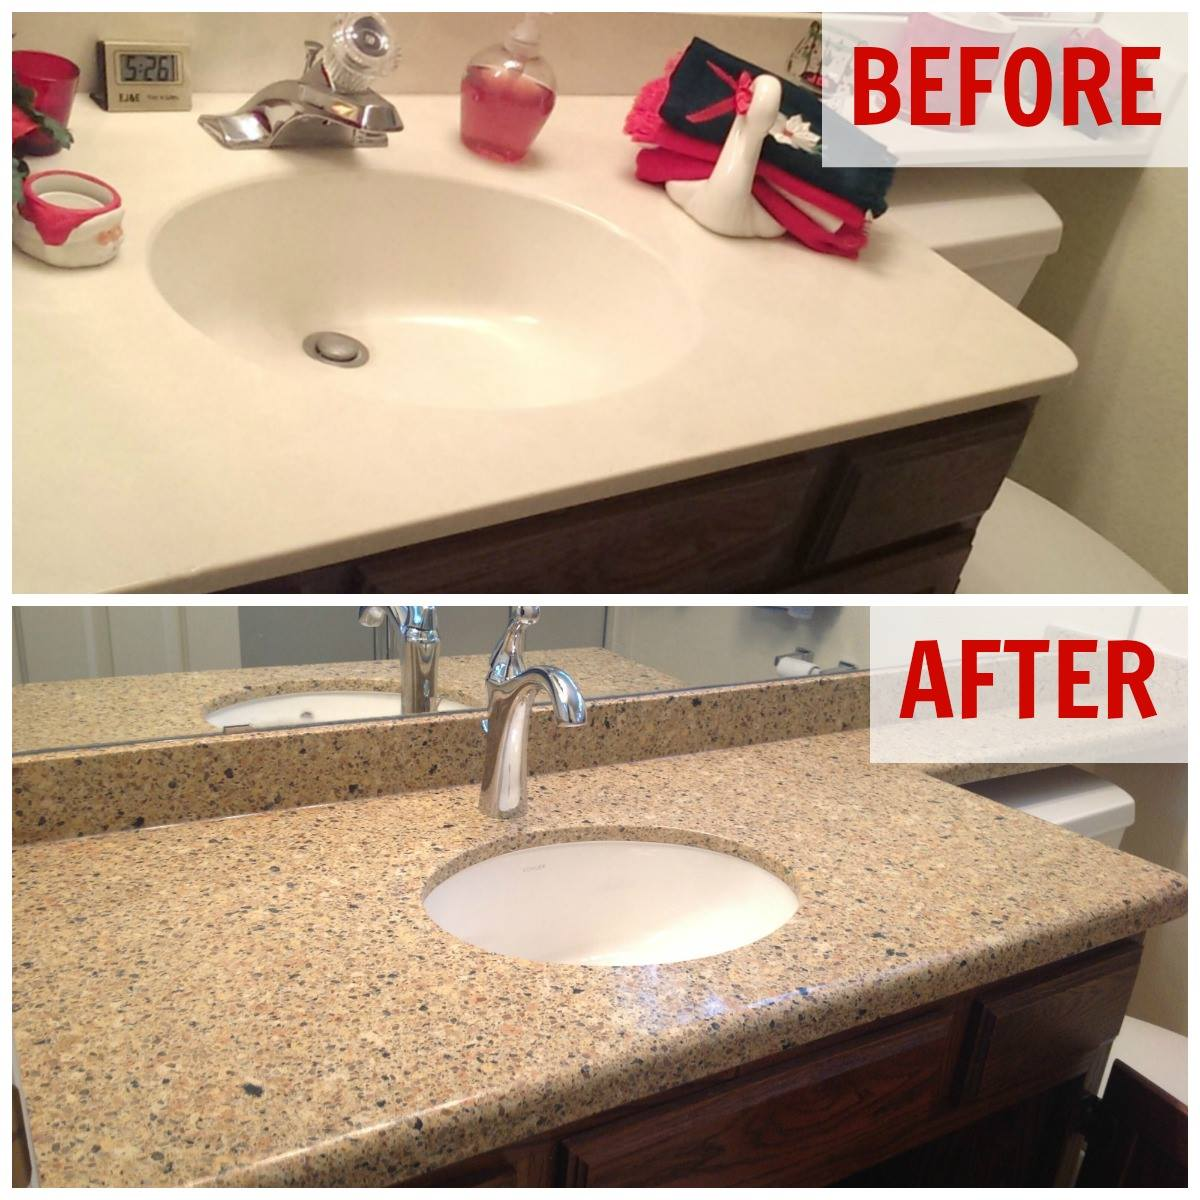 High Quality Remodel Your Bathroom With Sears Home Services